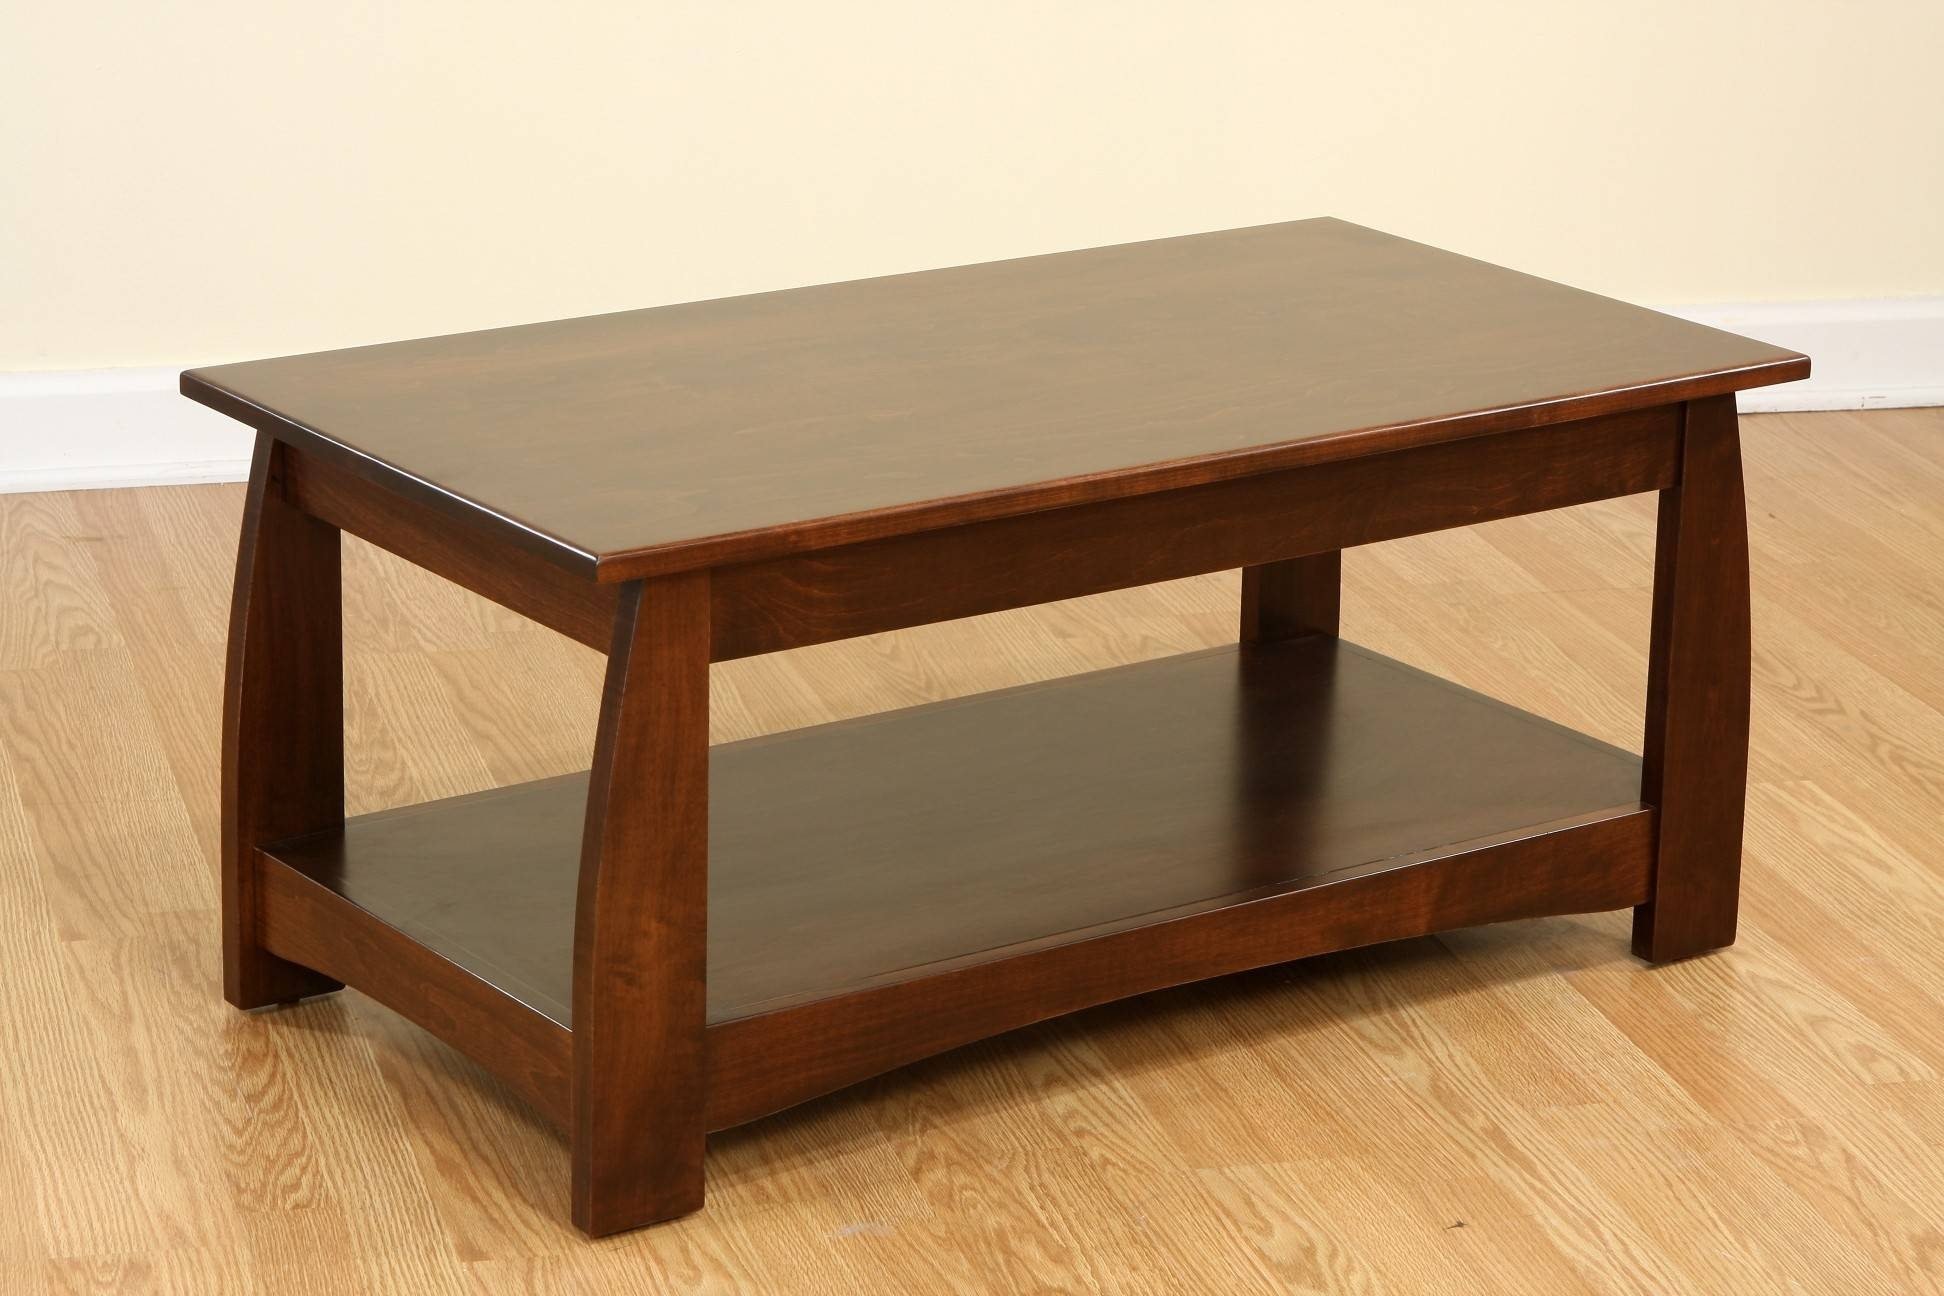 Coffee Table Round Wood Tables With Storage Solid Oak And End intended for Solid Wood Coffee Tables (Image 4 of 30)